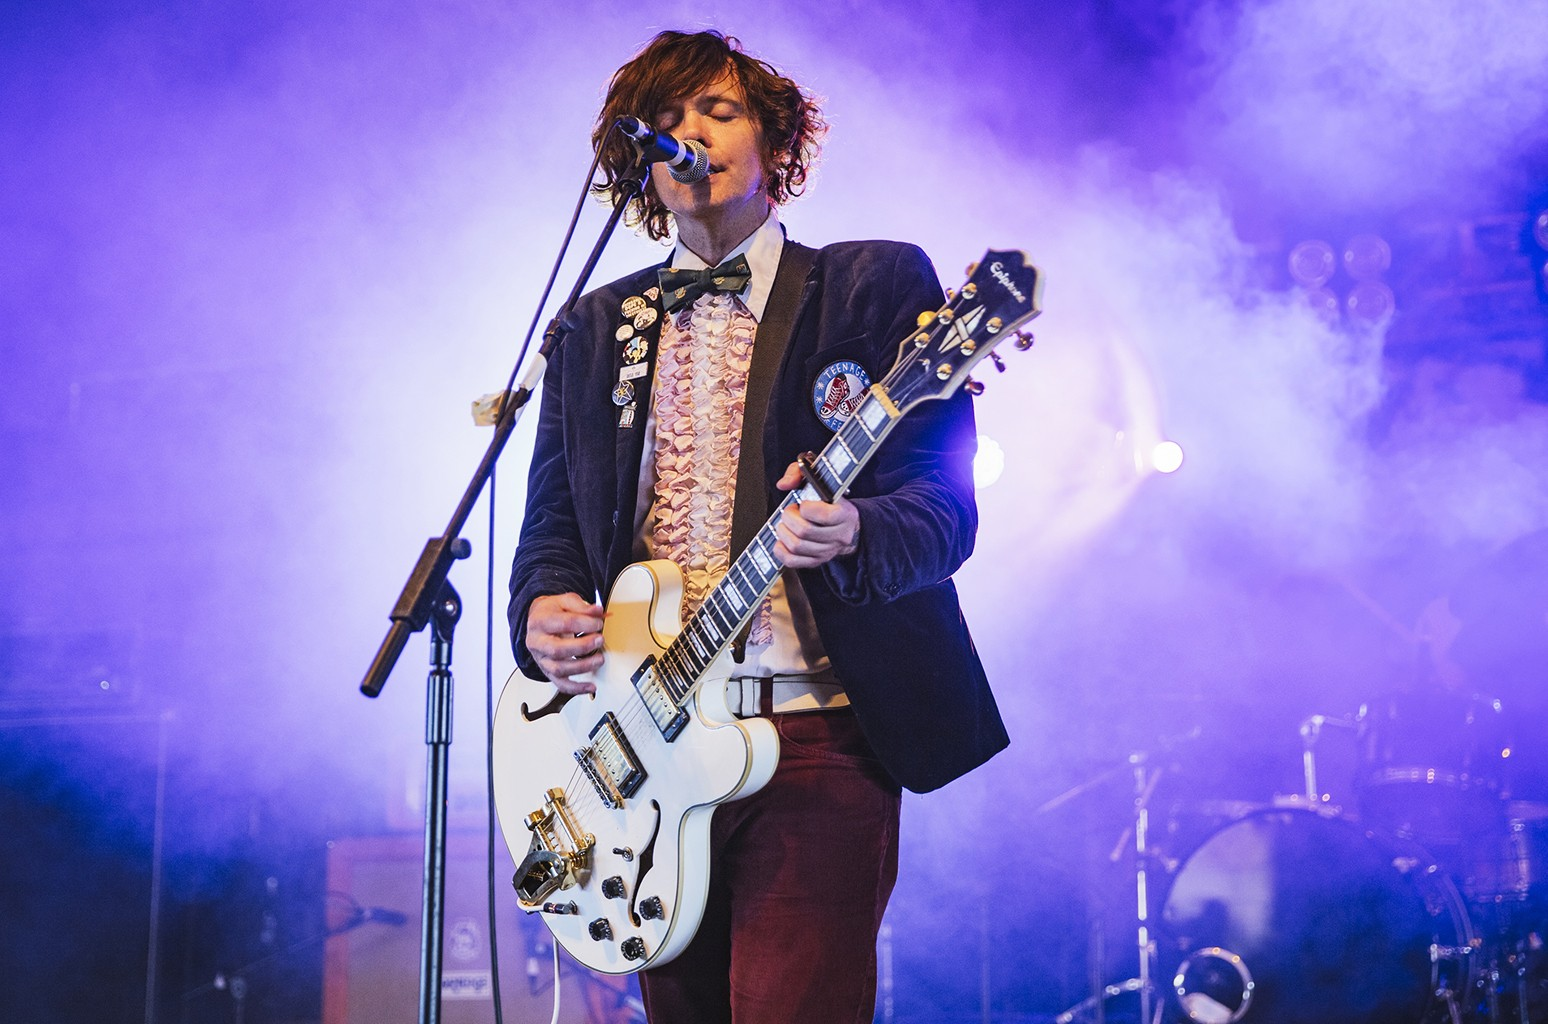 James Alex of Beach Slang